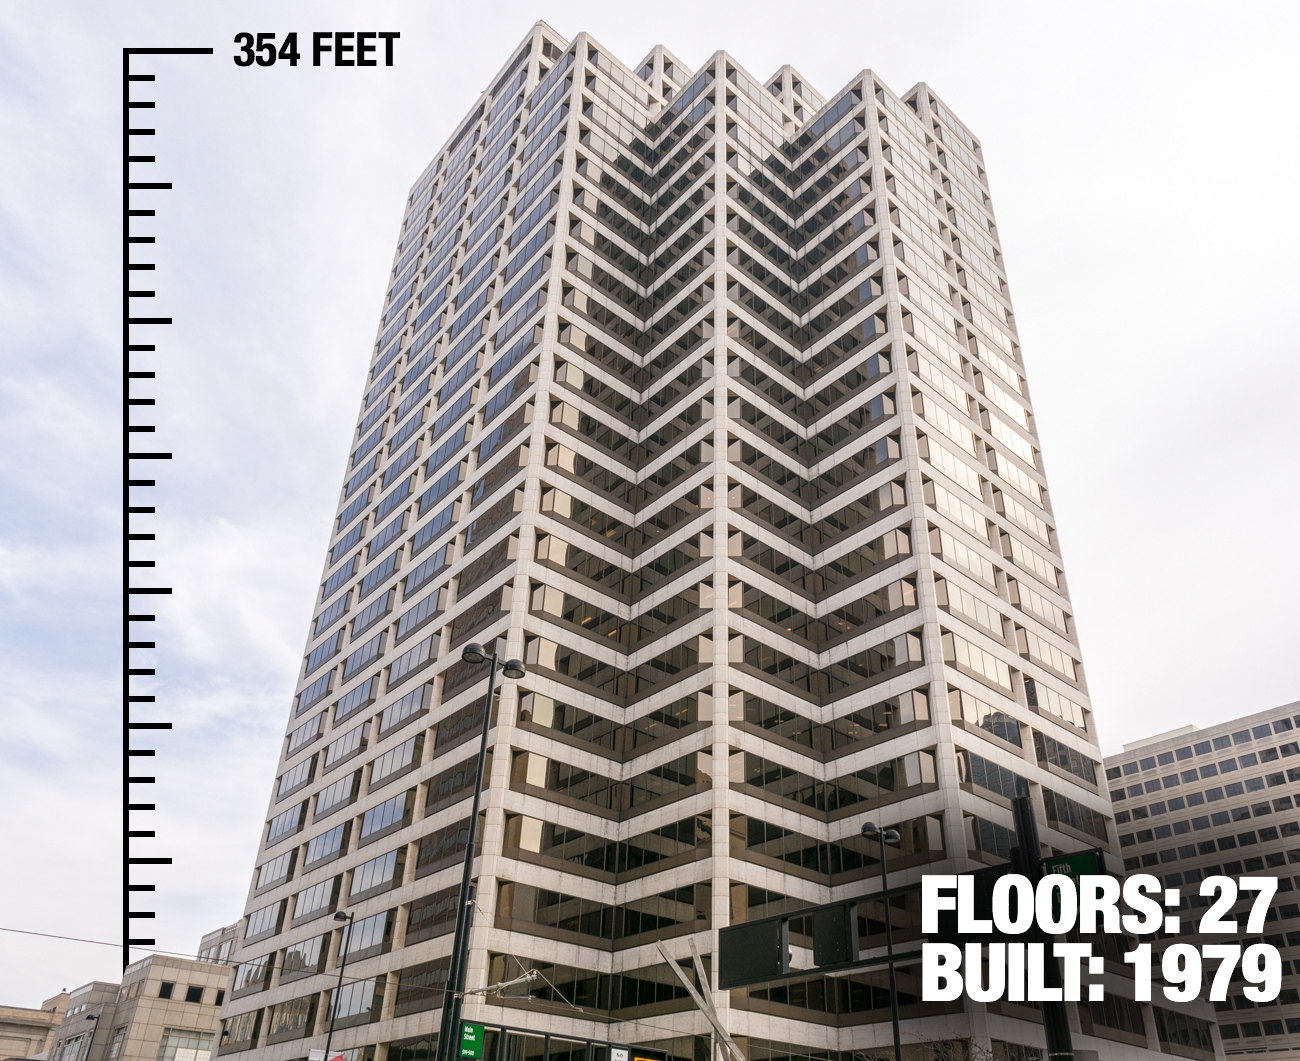 PNC Center: 354 feet tall, 27 floors, built in 1979 / Image: Phil Armstrong, Cincinnati Refined // Published: 2.21.17